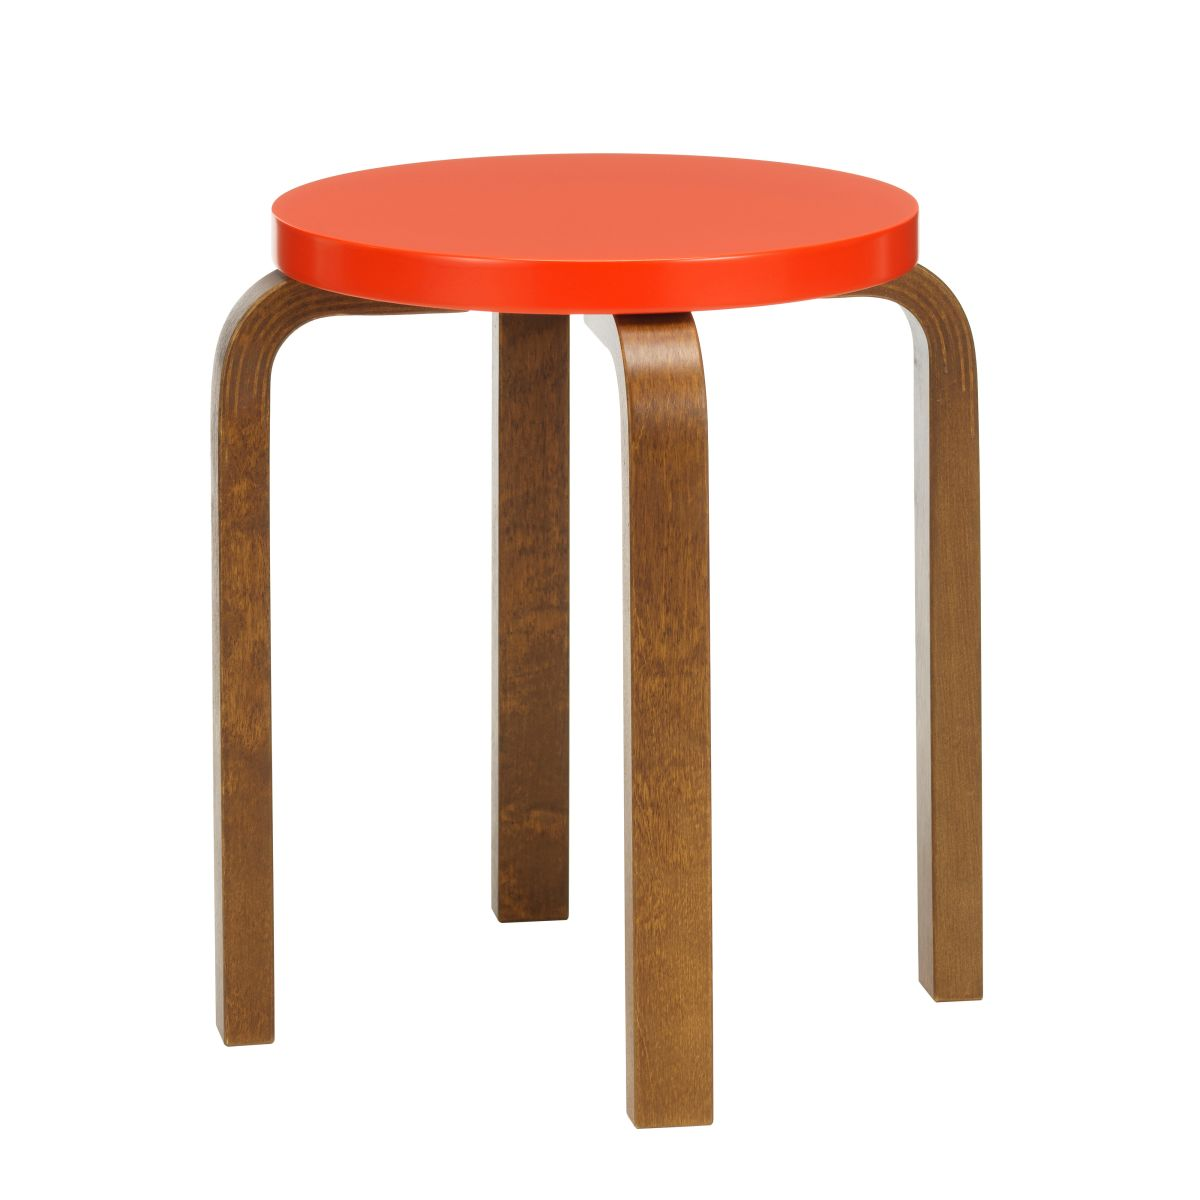 Stool E60 walnut stain bright red lacquer_F